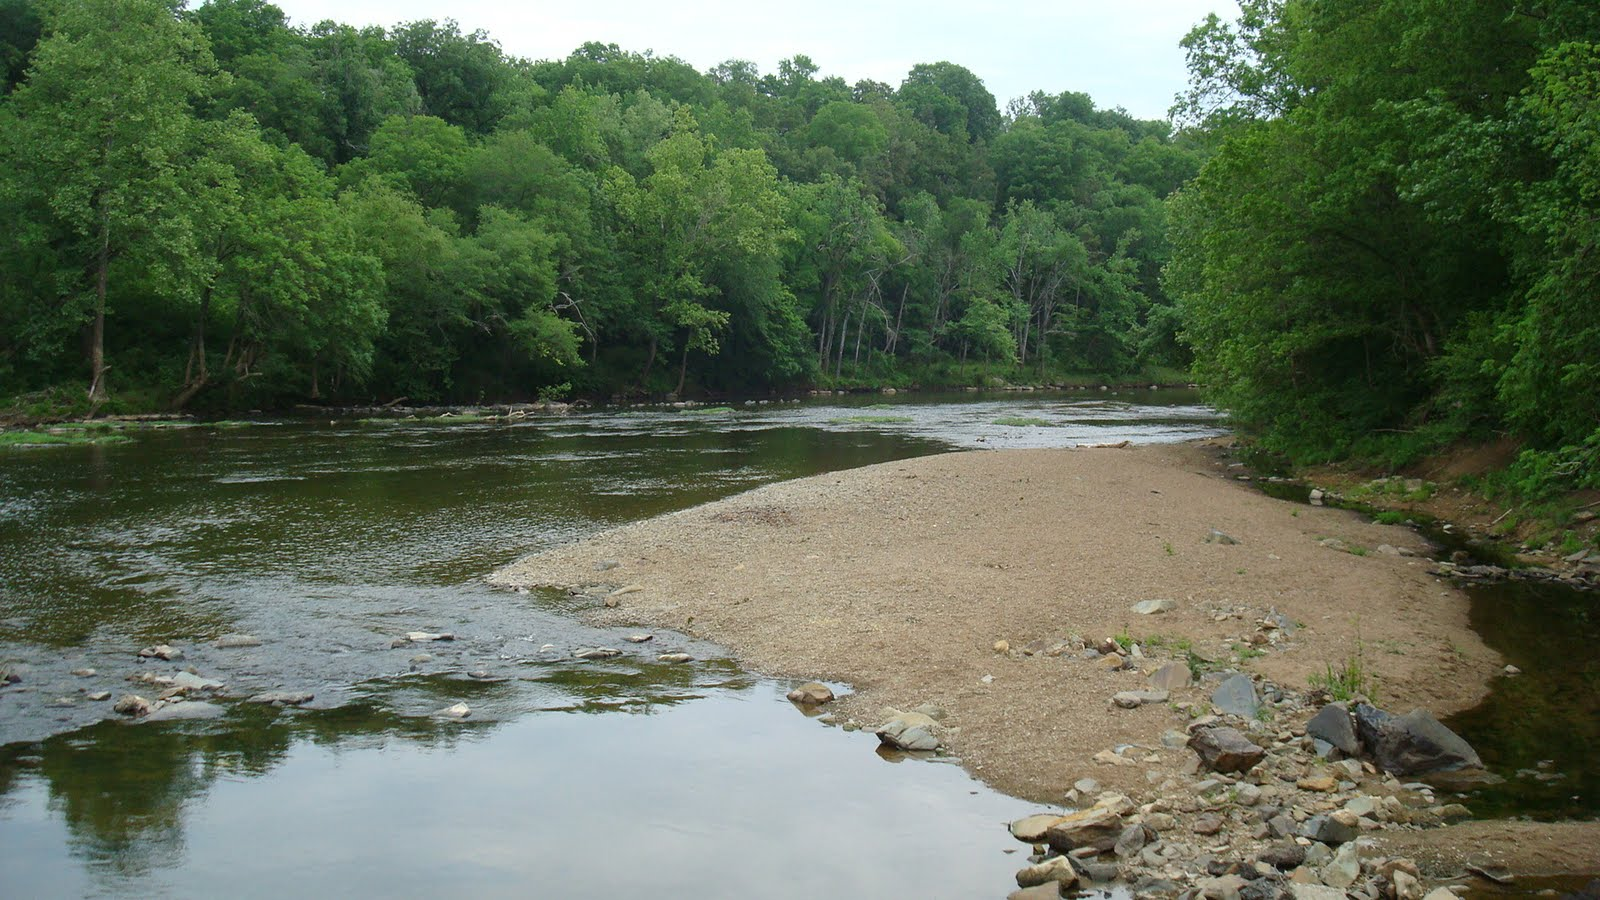 rocky river dating site South carolina state parks with native american heritage: charles towne landing, charleston county edisto beach state park pacolet river heritage preserve.